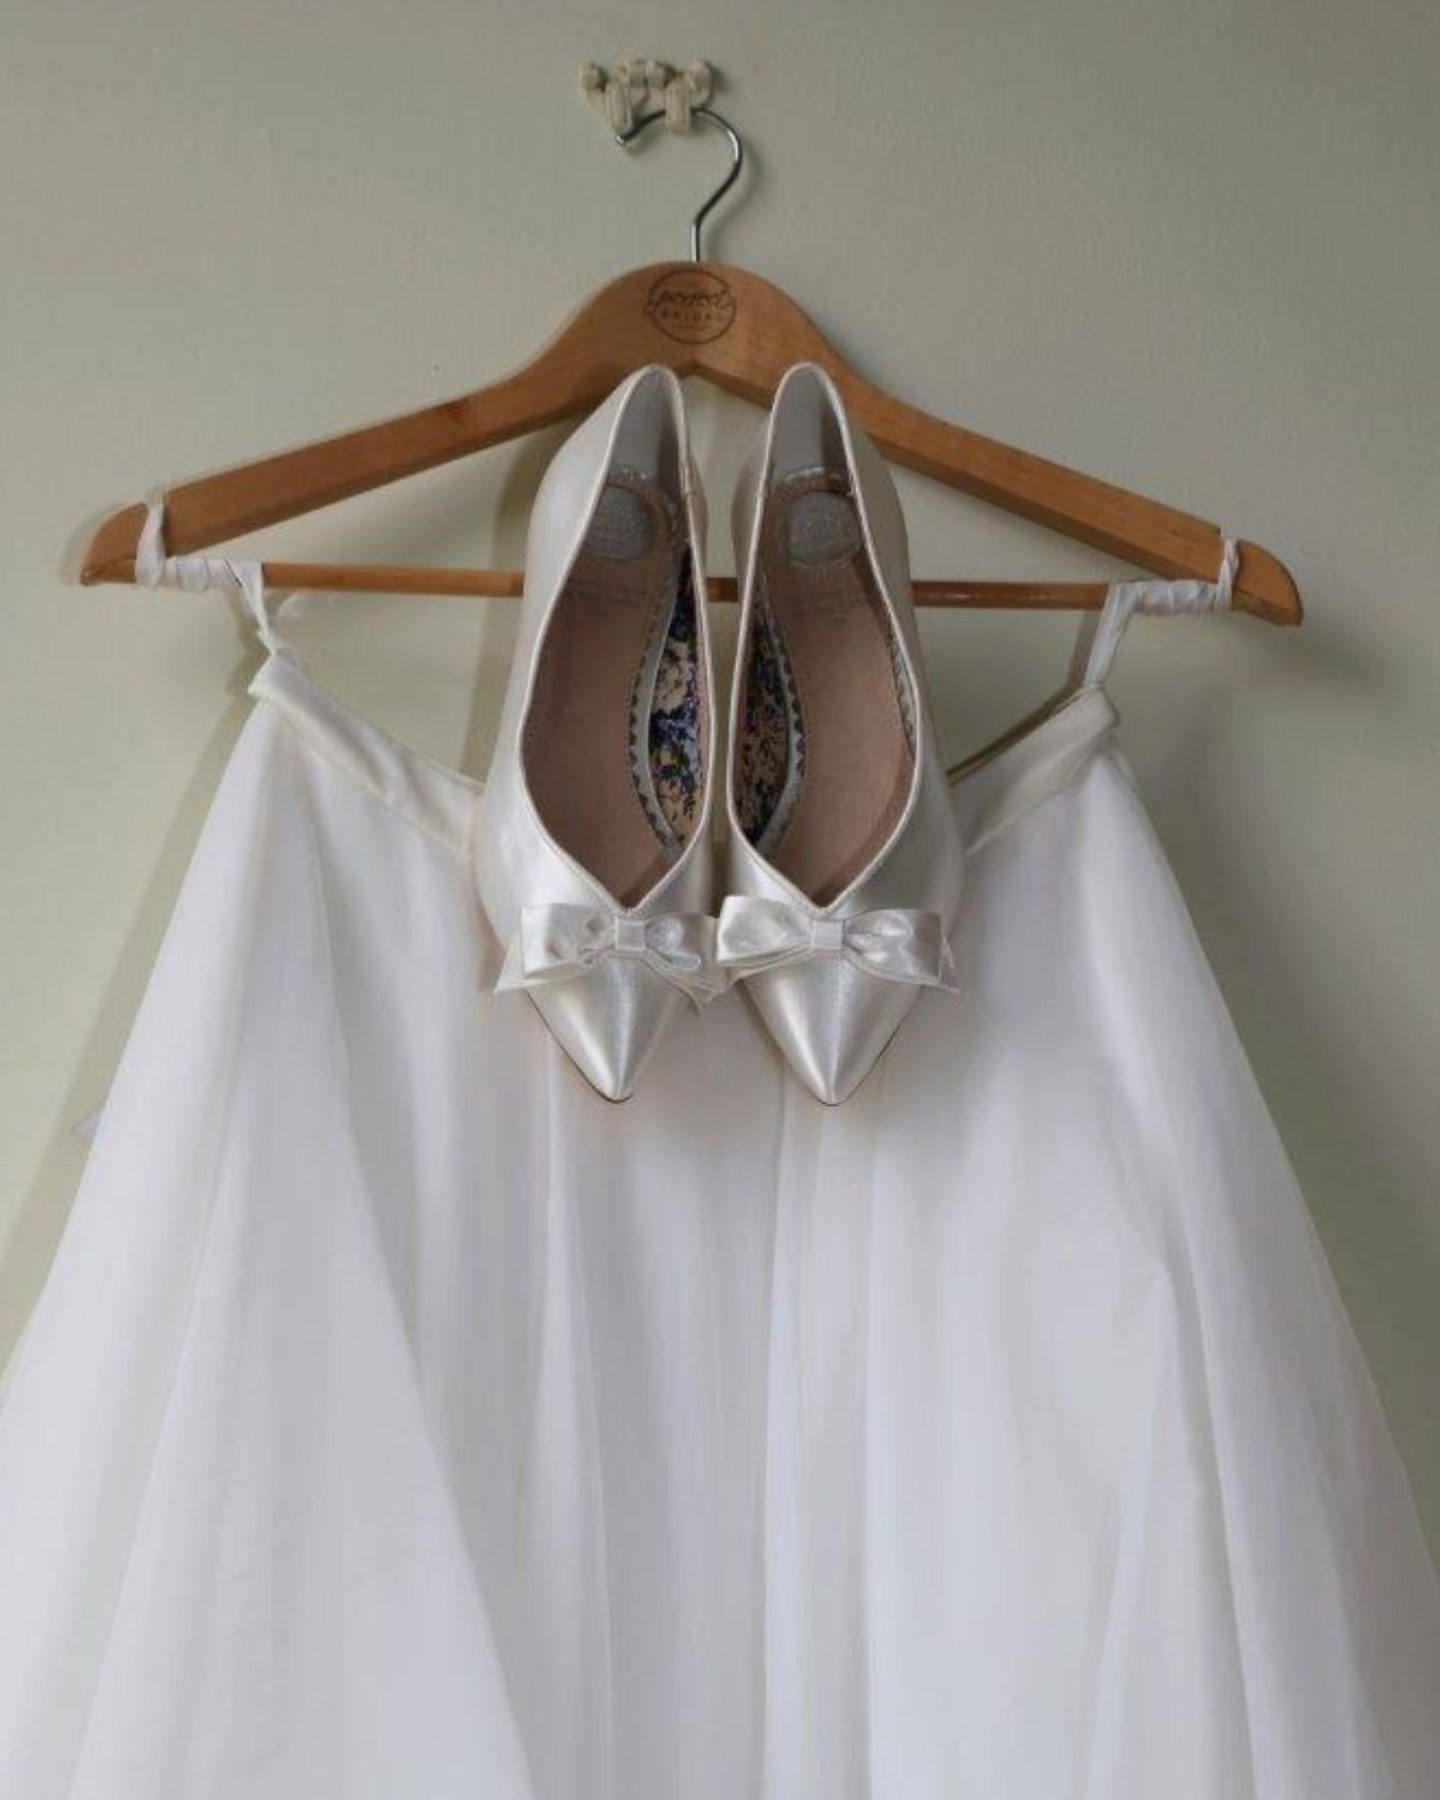 Stacey vintage wedding shoes perfect bridal company at boho bride boutique